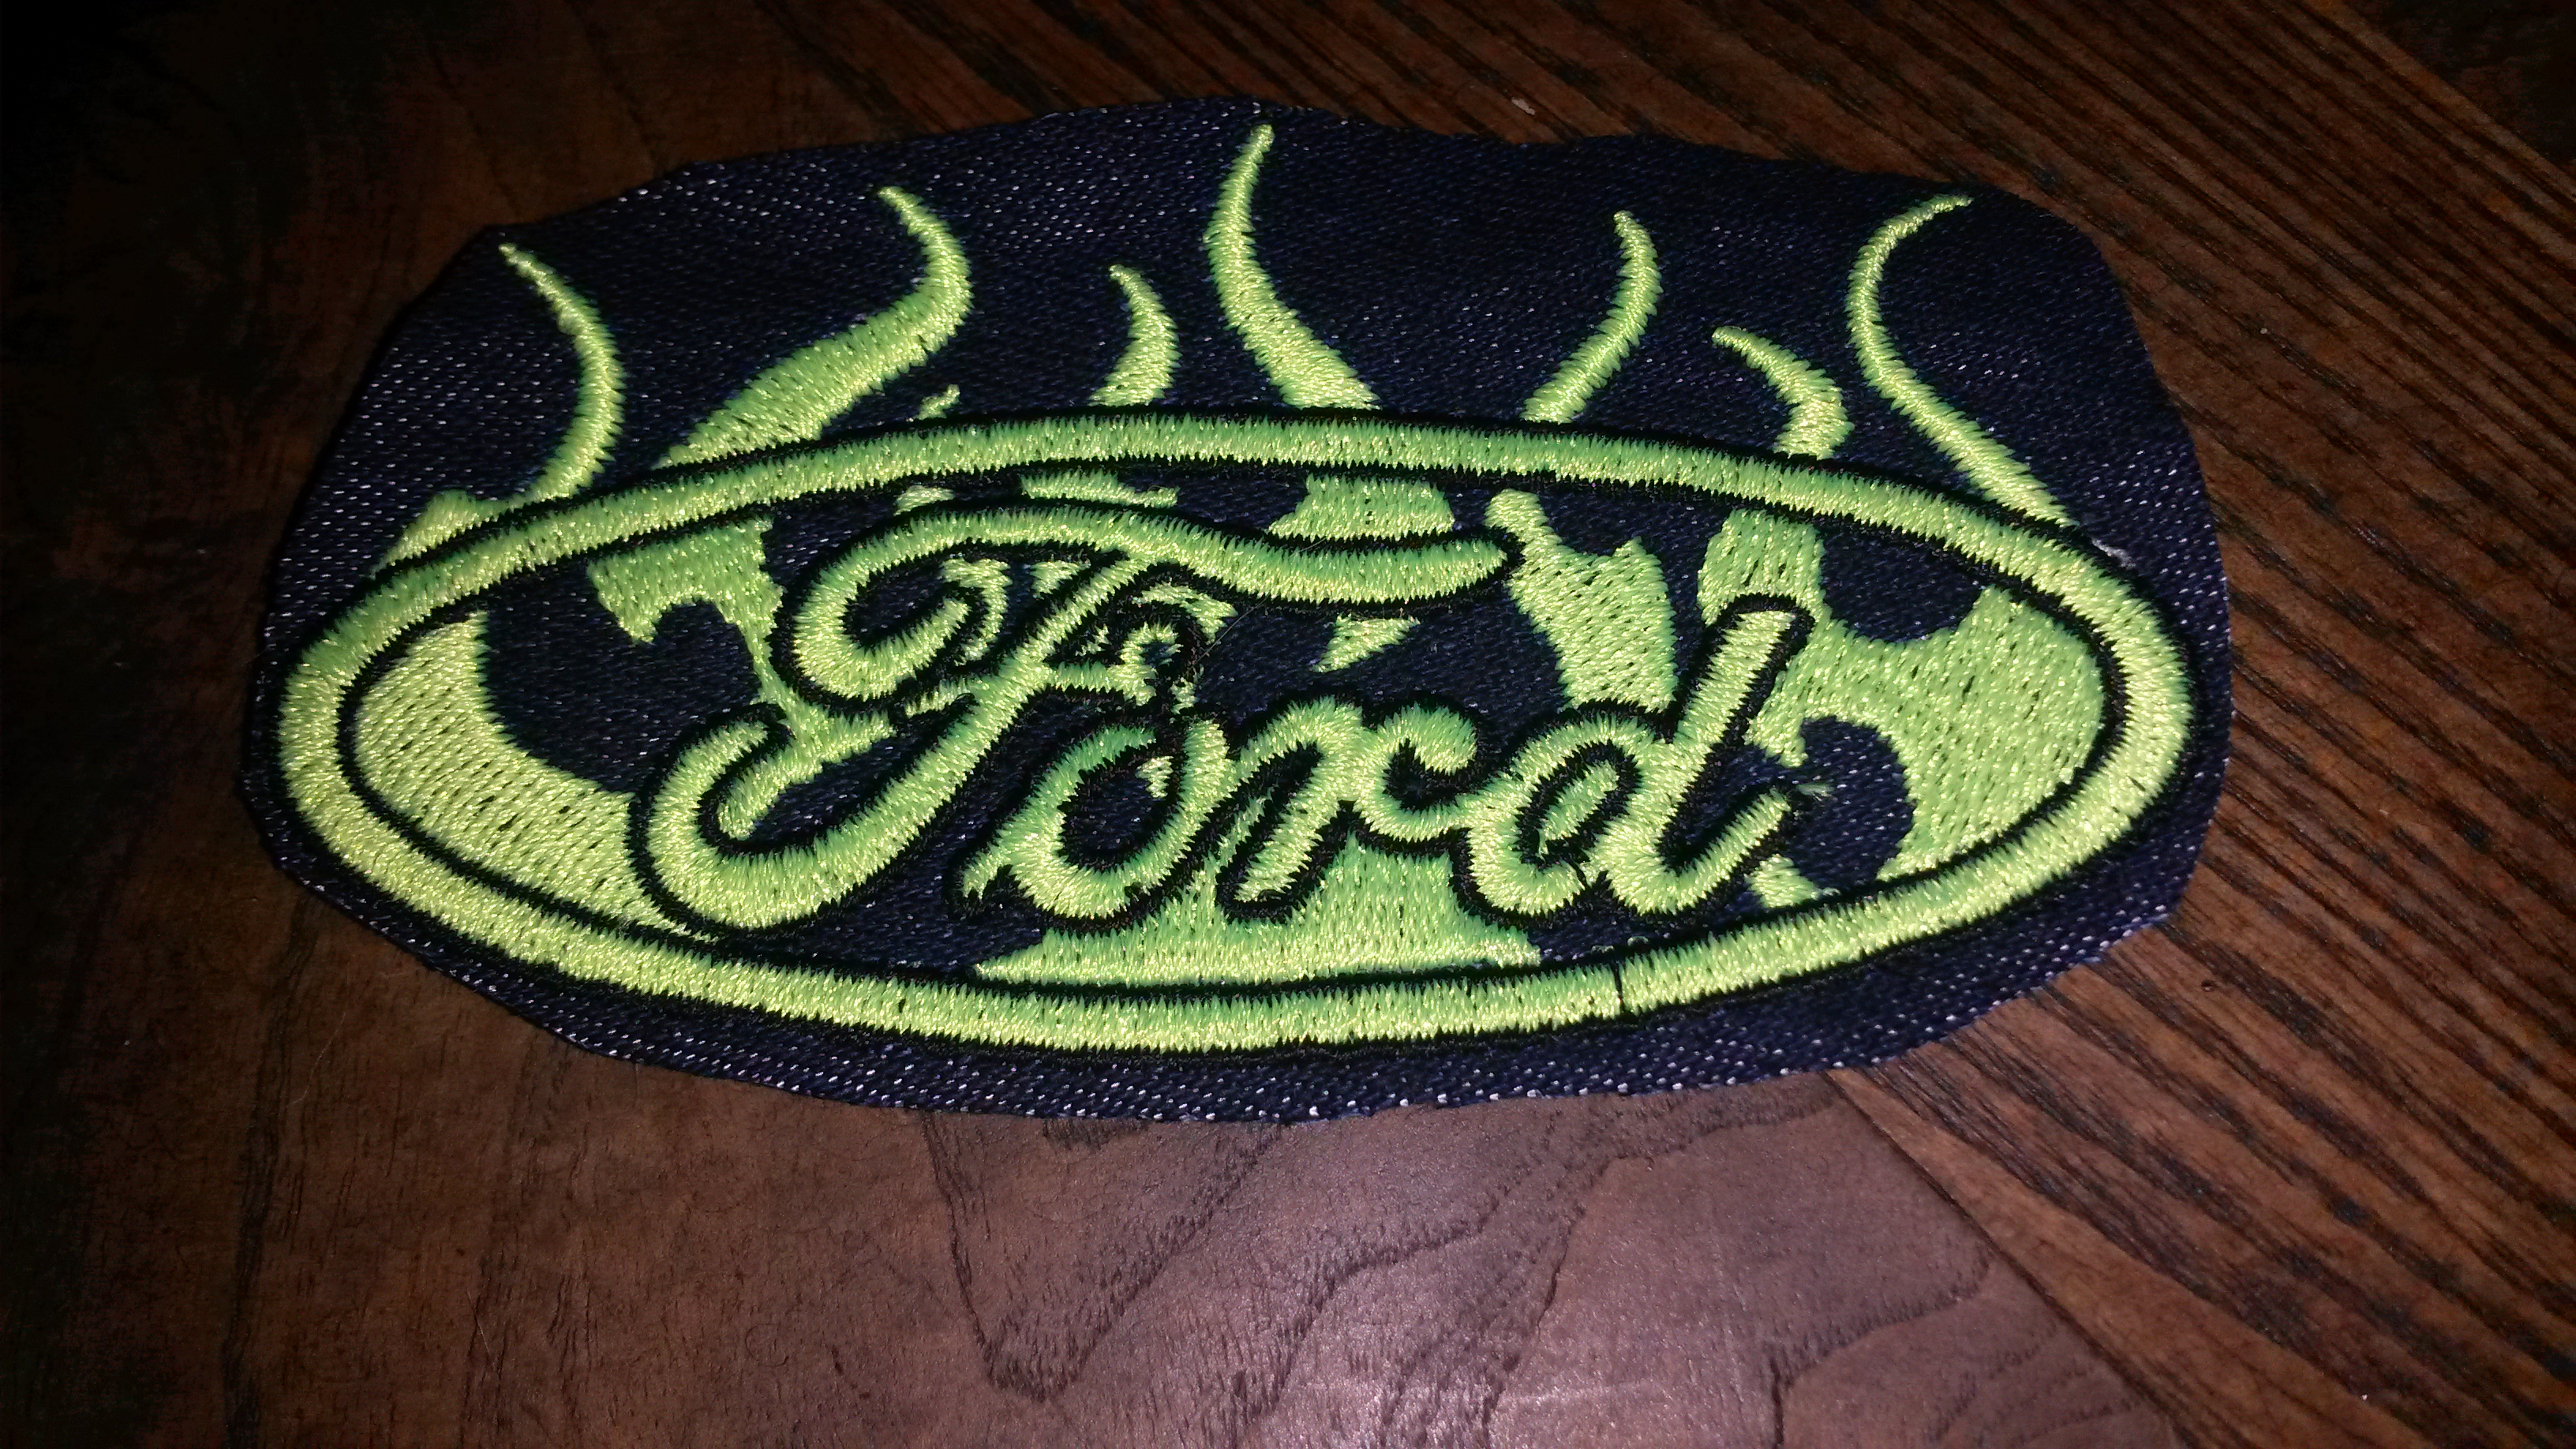 Picture of Embordering Jean Patches